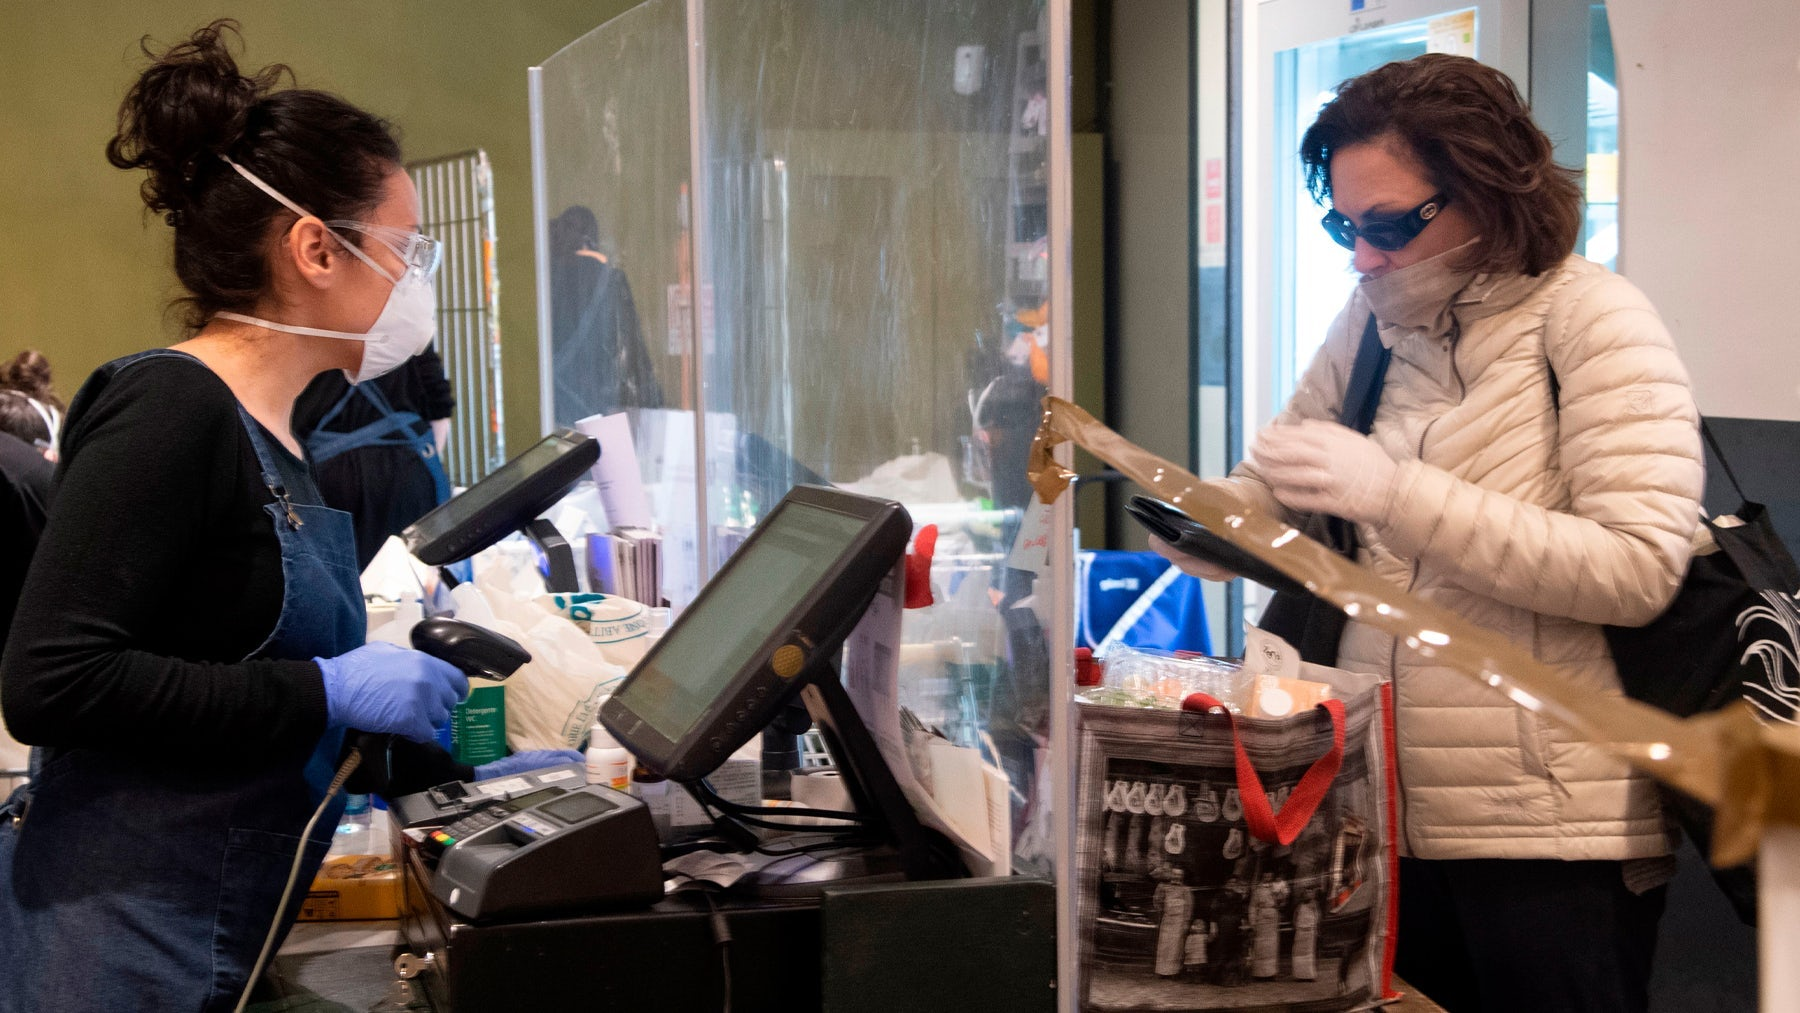 Face masks and plexiglass barriers have become the norm in shops that remain open during the Covid-19 pandemic | Source: Getty Images